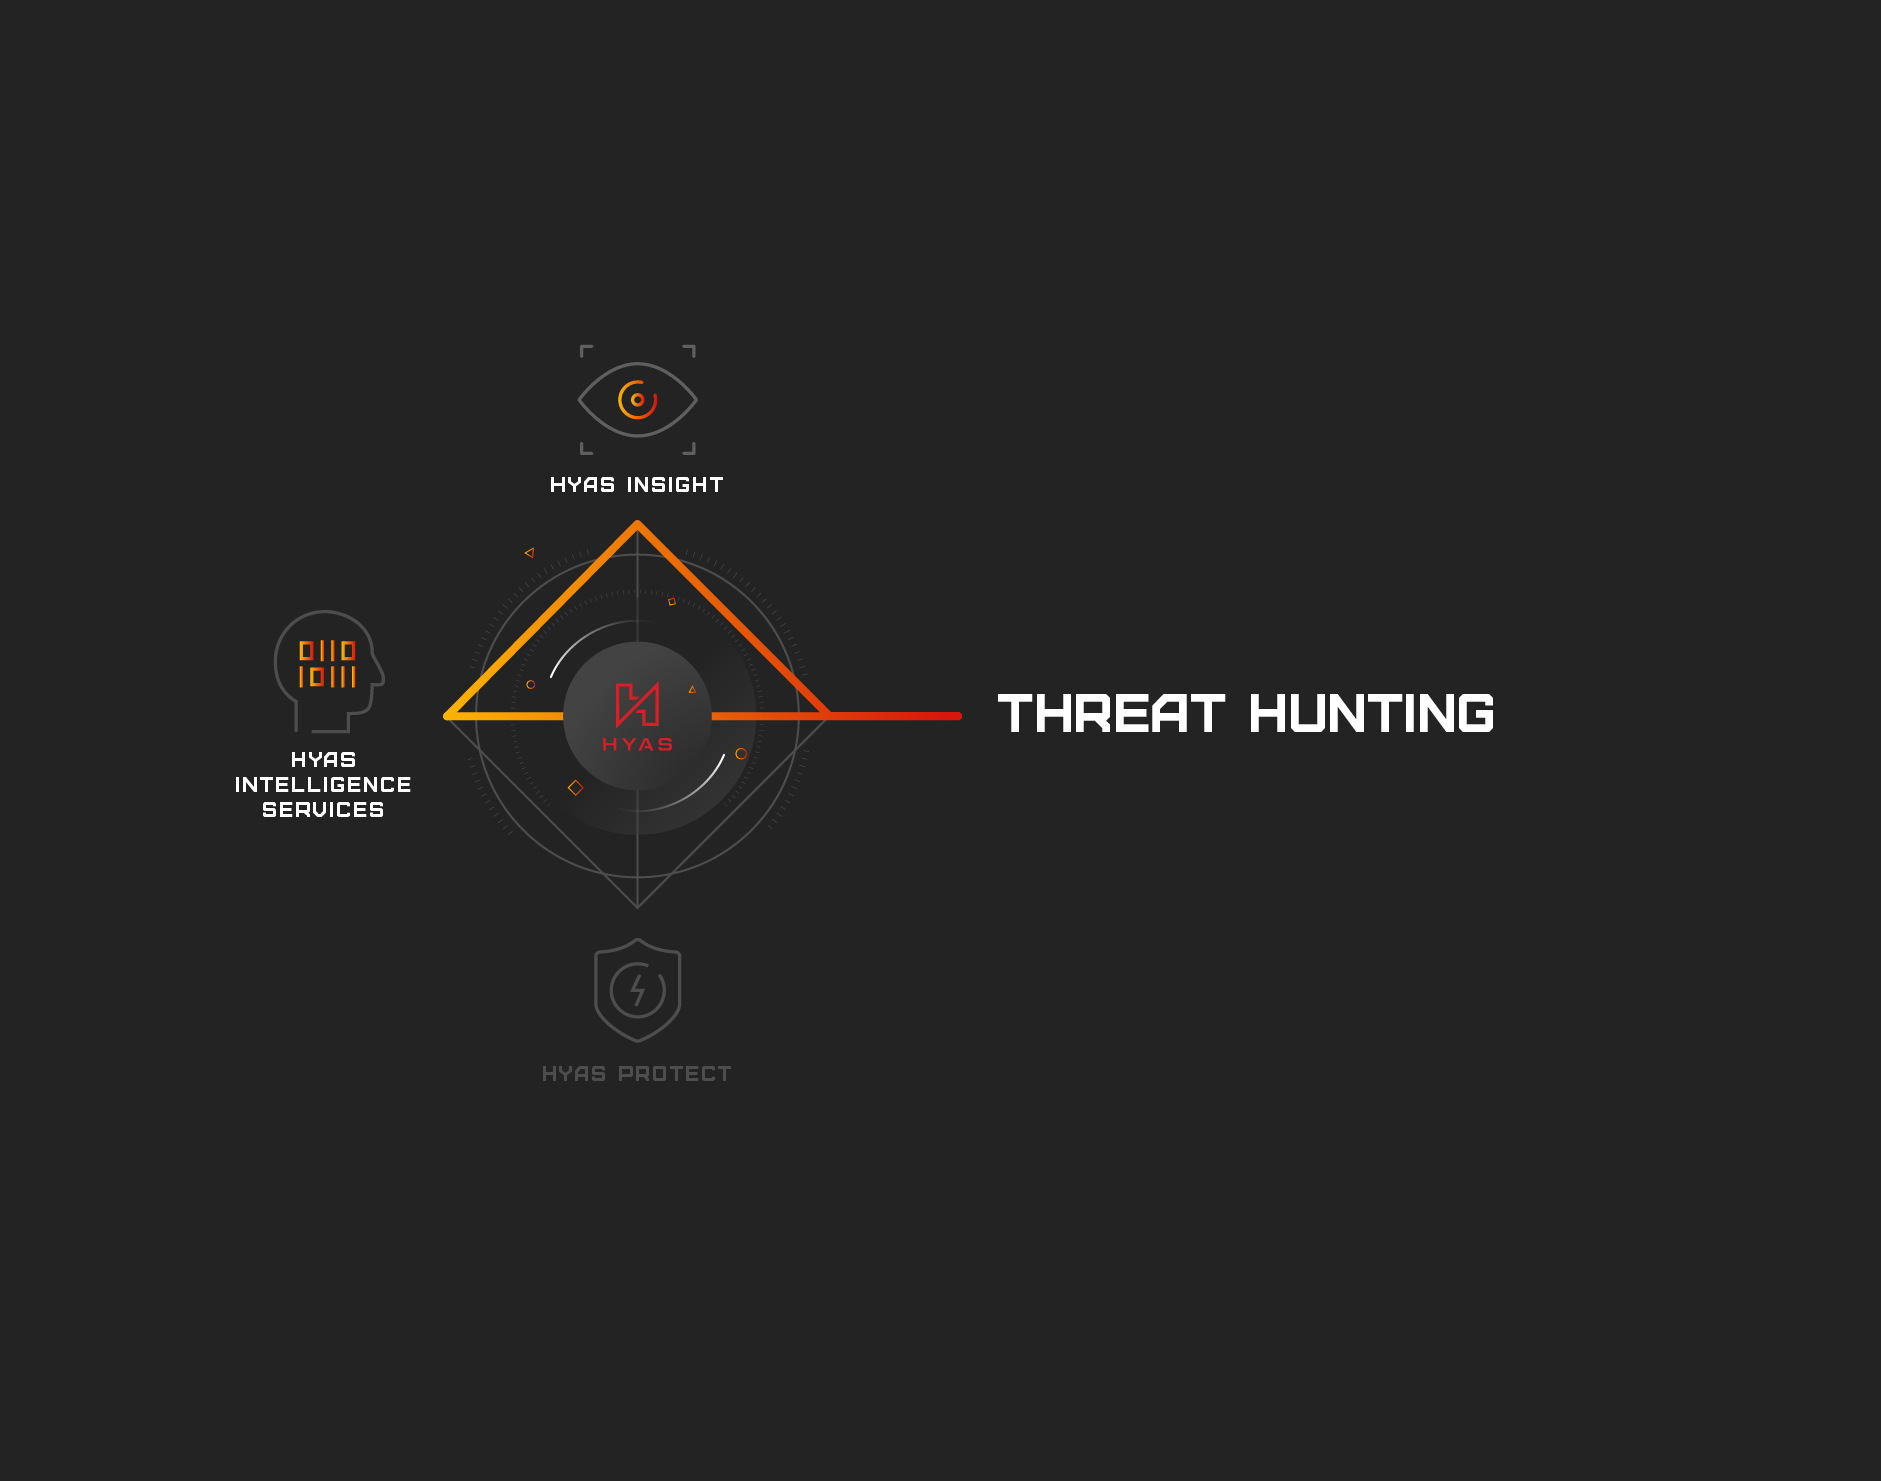 threat hunting@4x